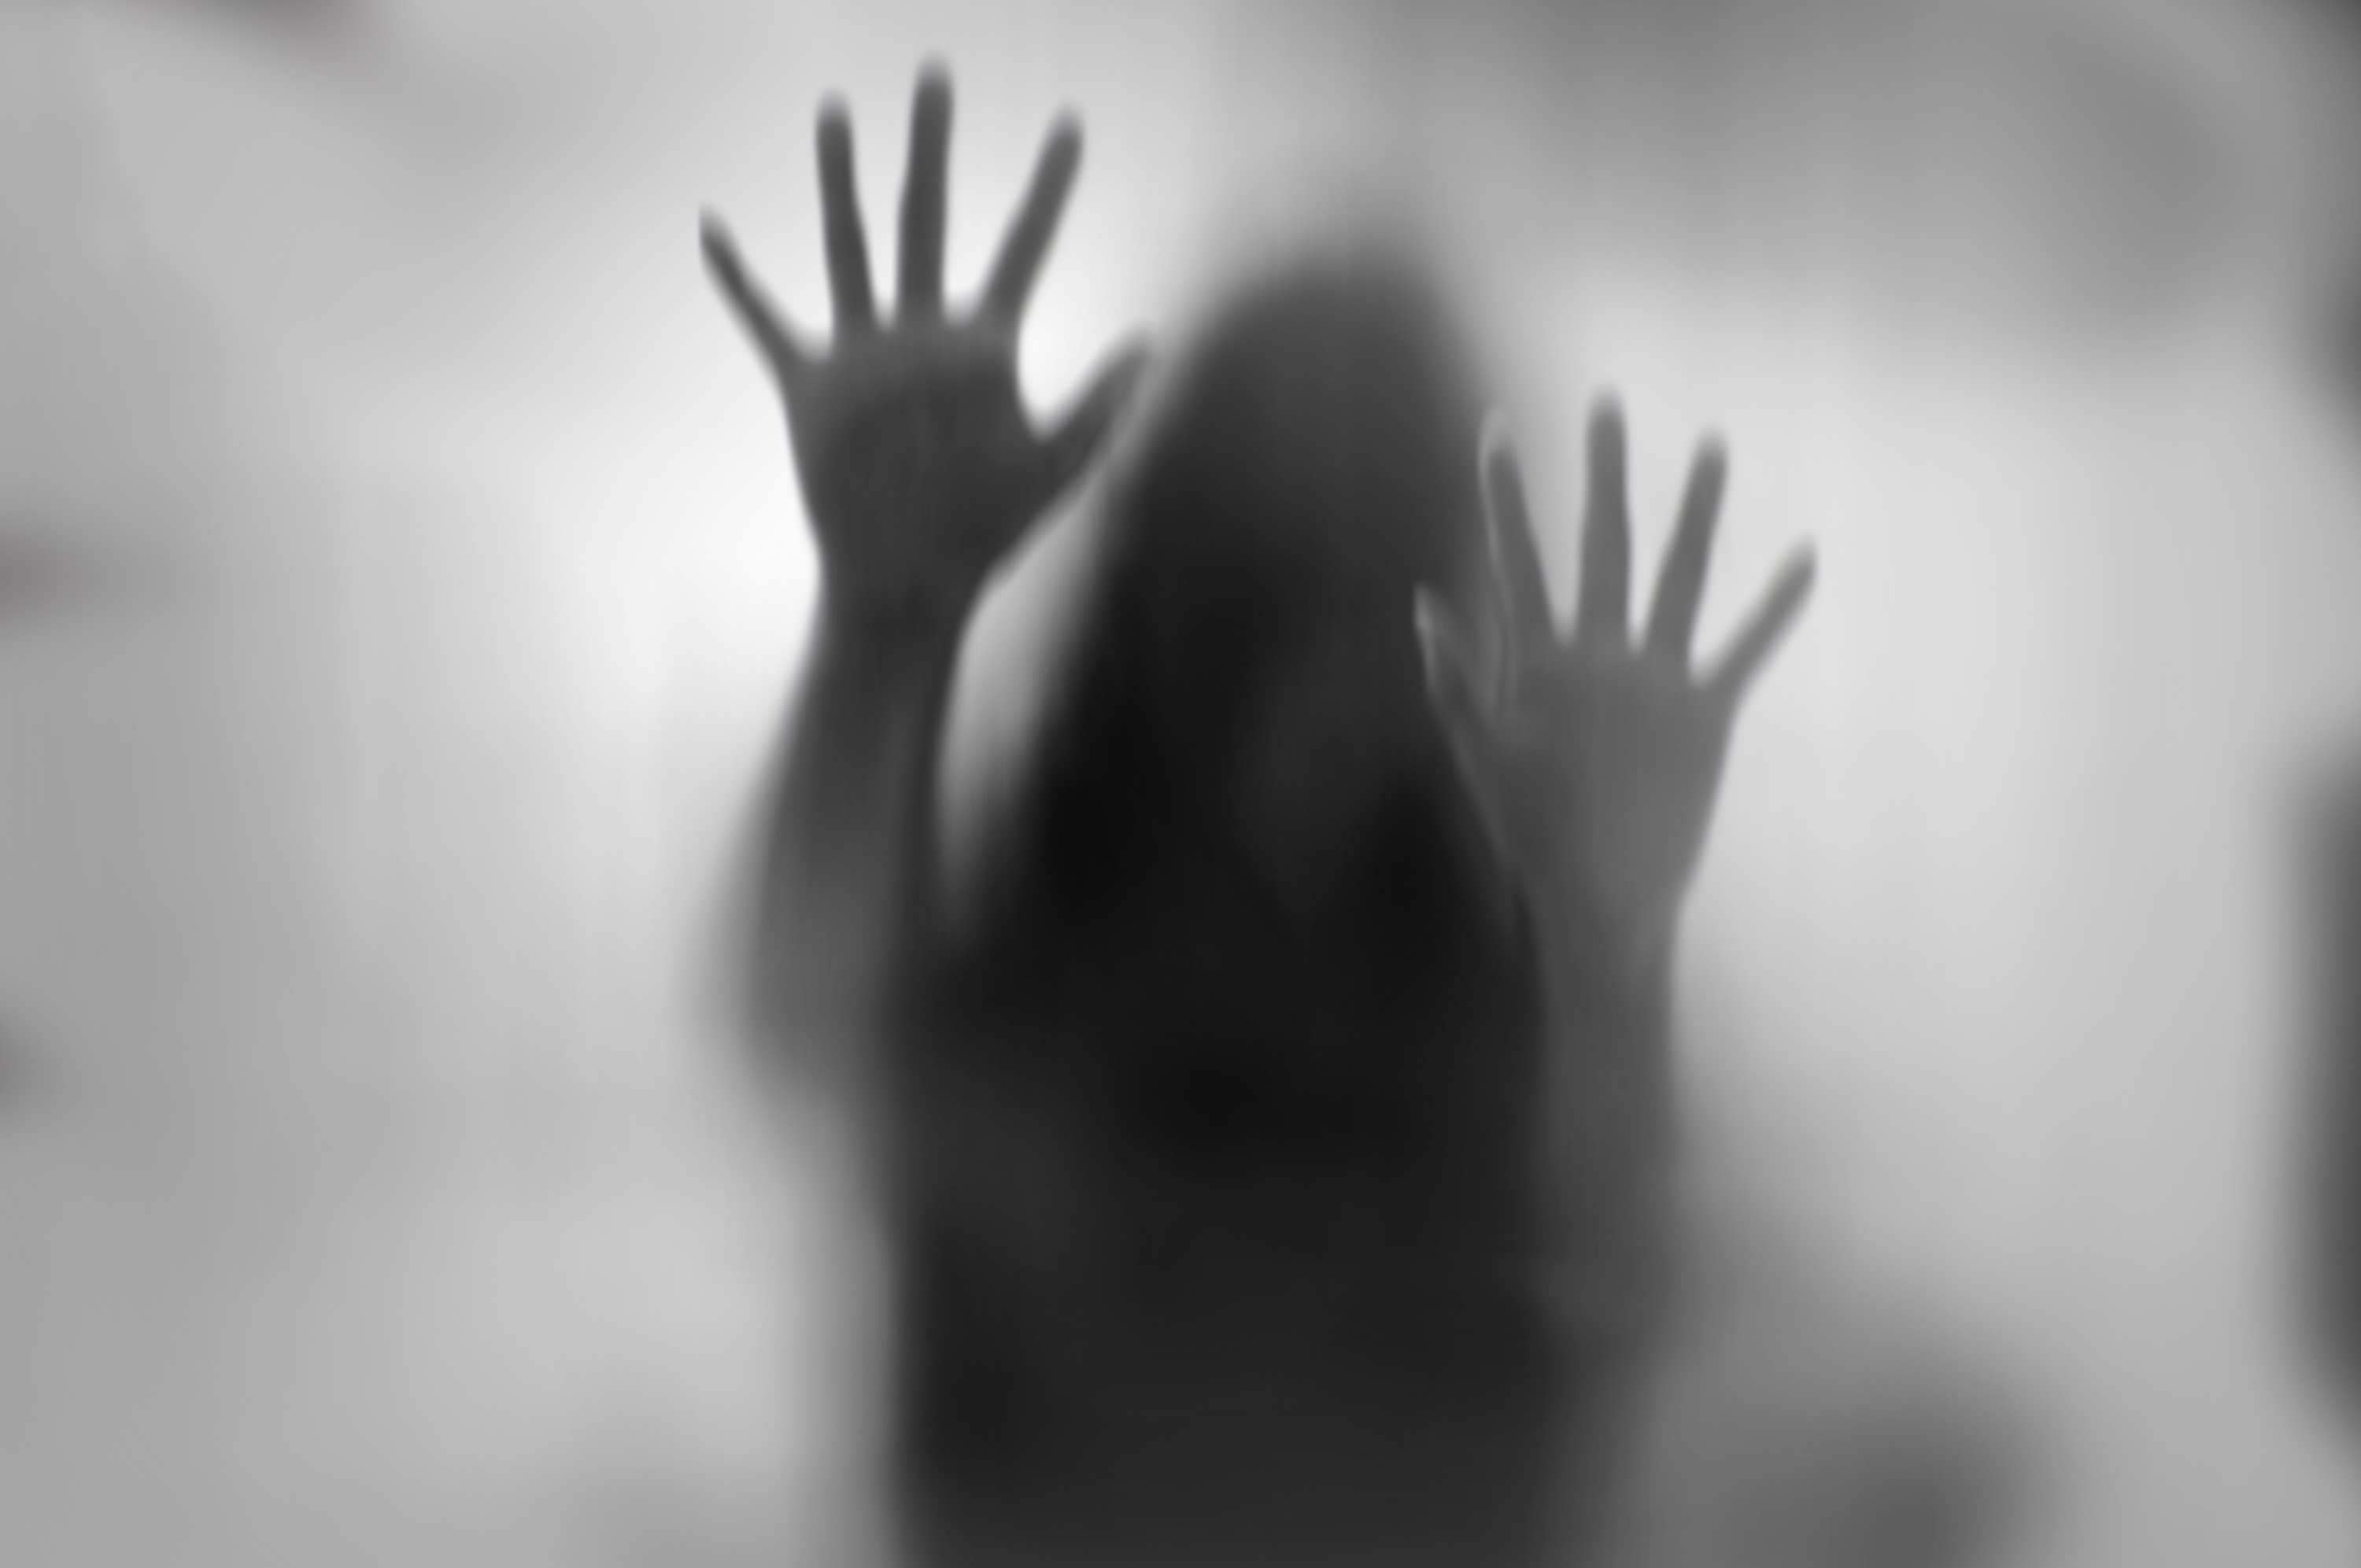 virtual image of ghost